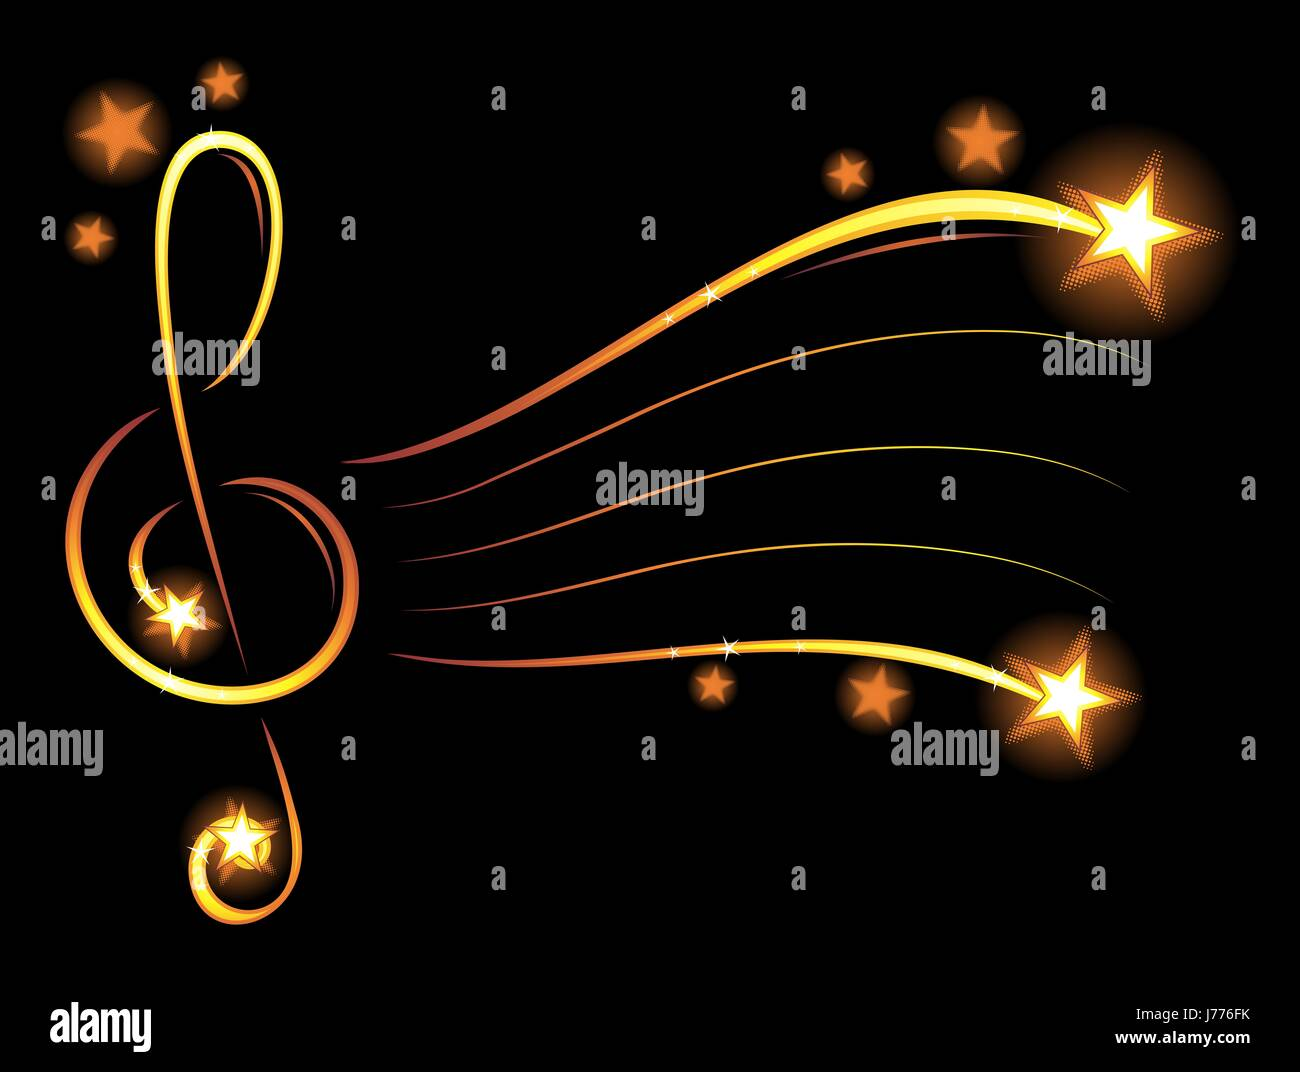 Music Musical Wallpaper Star Backdrop Background Gold